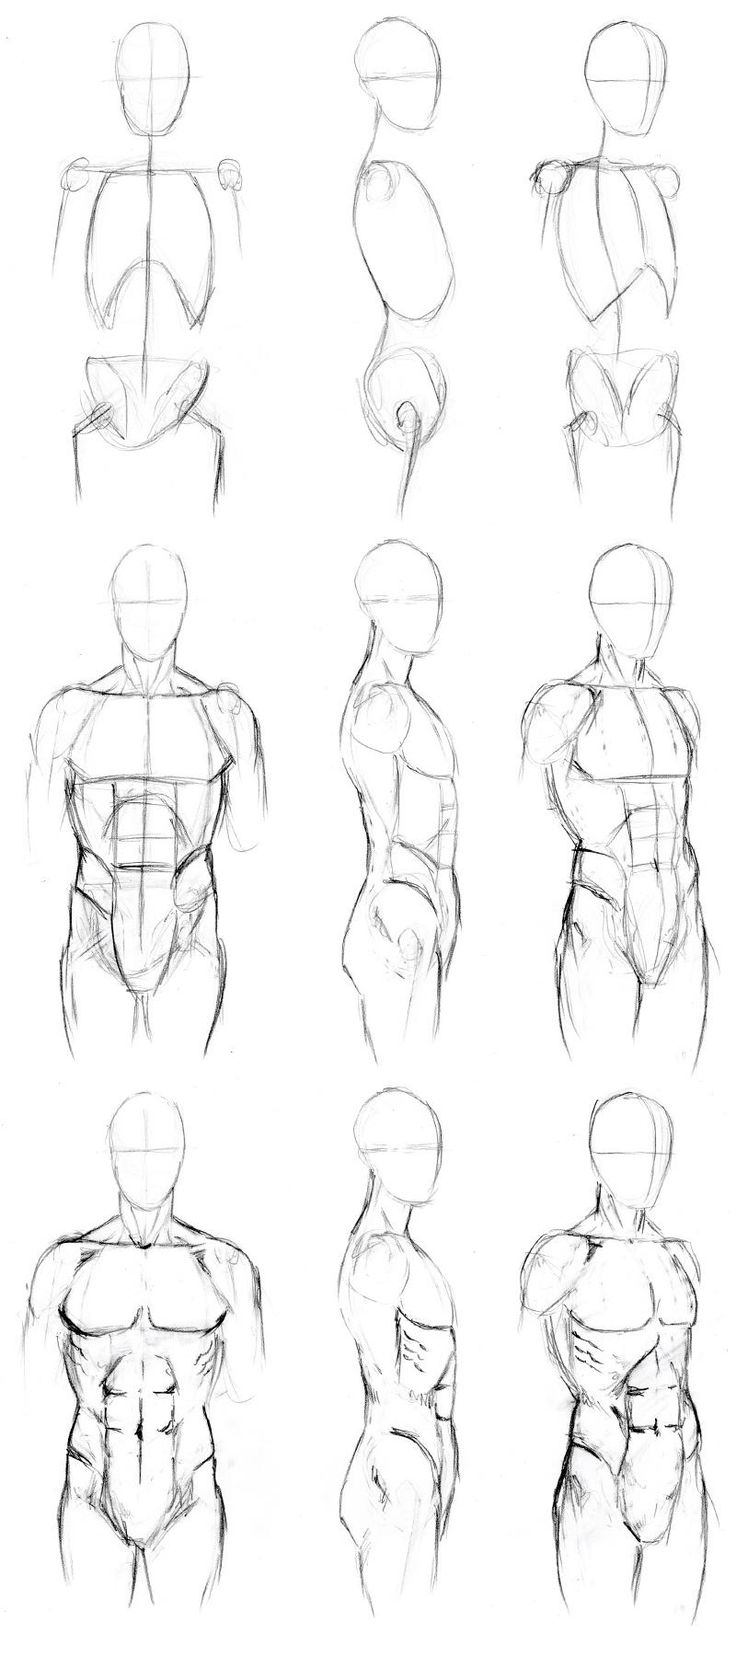 736x1656 30 Best Muscle Images On Character Design, Sketches